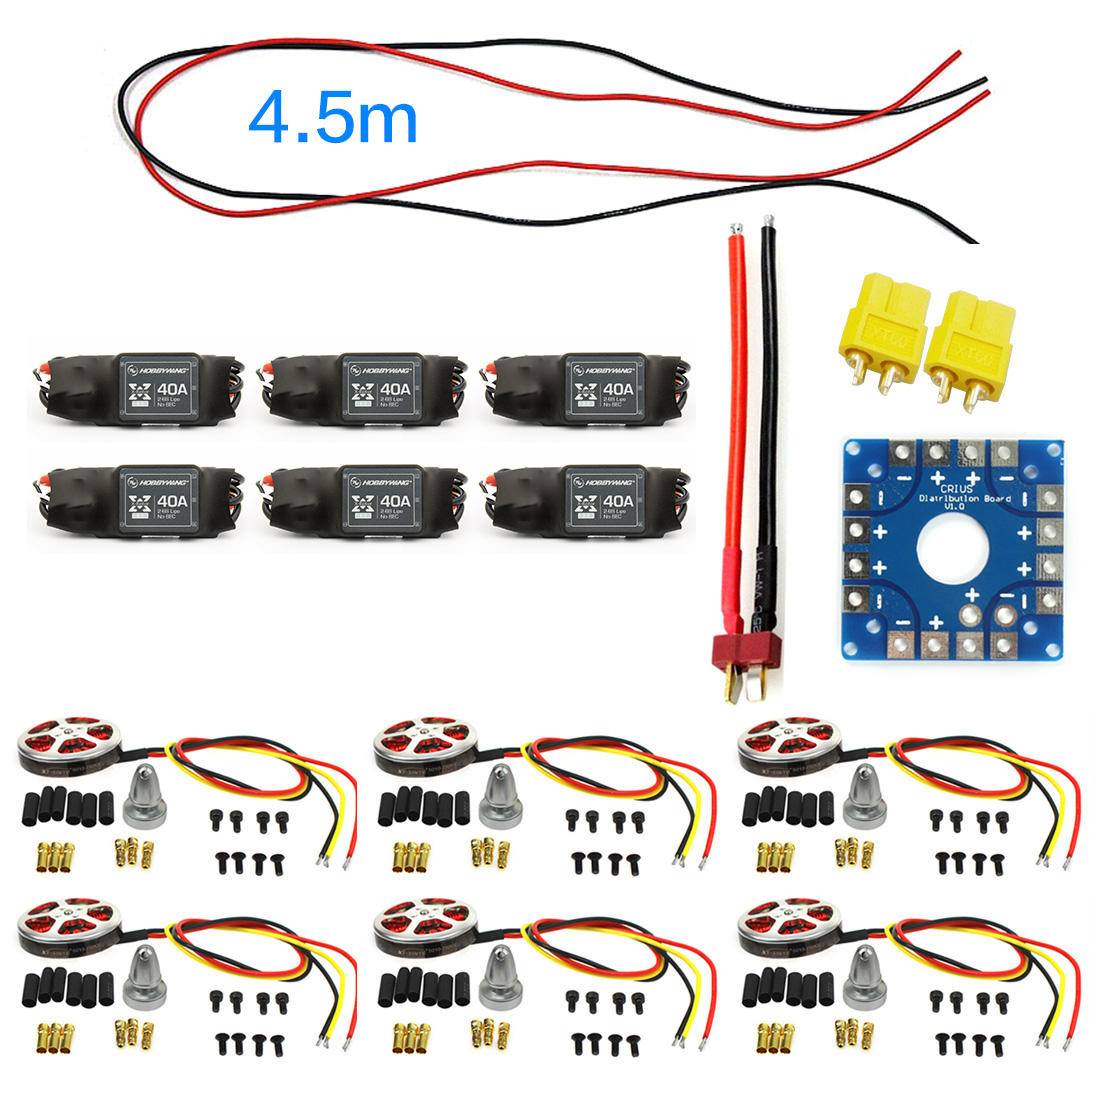 F04997-E JMT Assembled Kit : 40A ESC Controller 750KV Motor Connection Board Wire for 6-Aix Drone Multi Rotor Hexacopter zy 25 diy solderless assembled 25 hole mini bread board test board multi colored 1 set